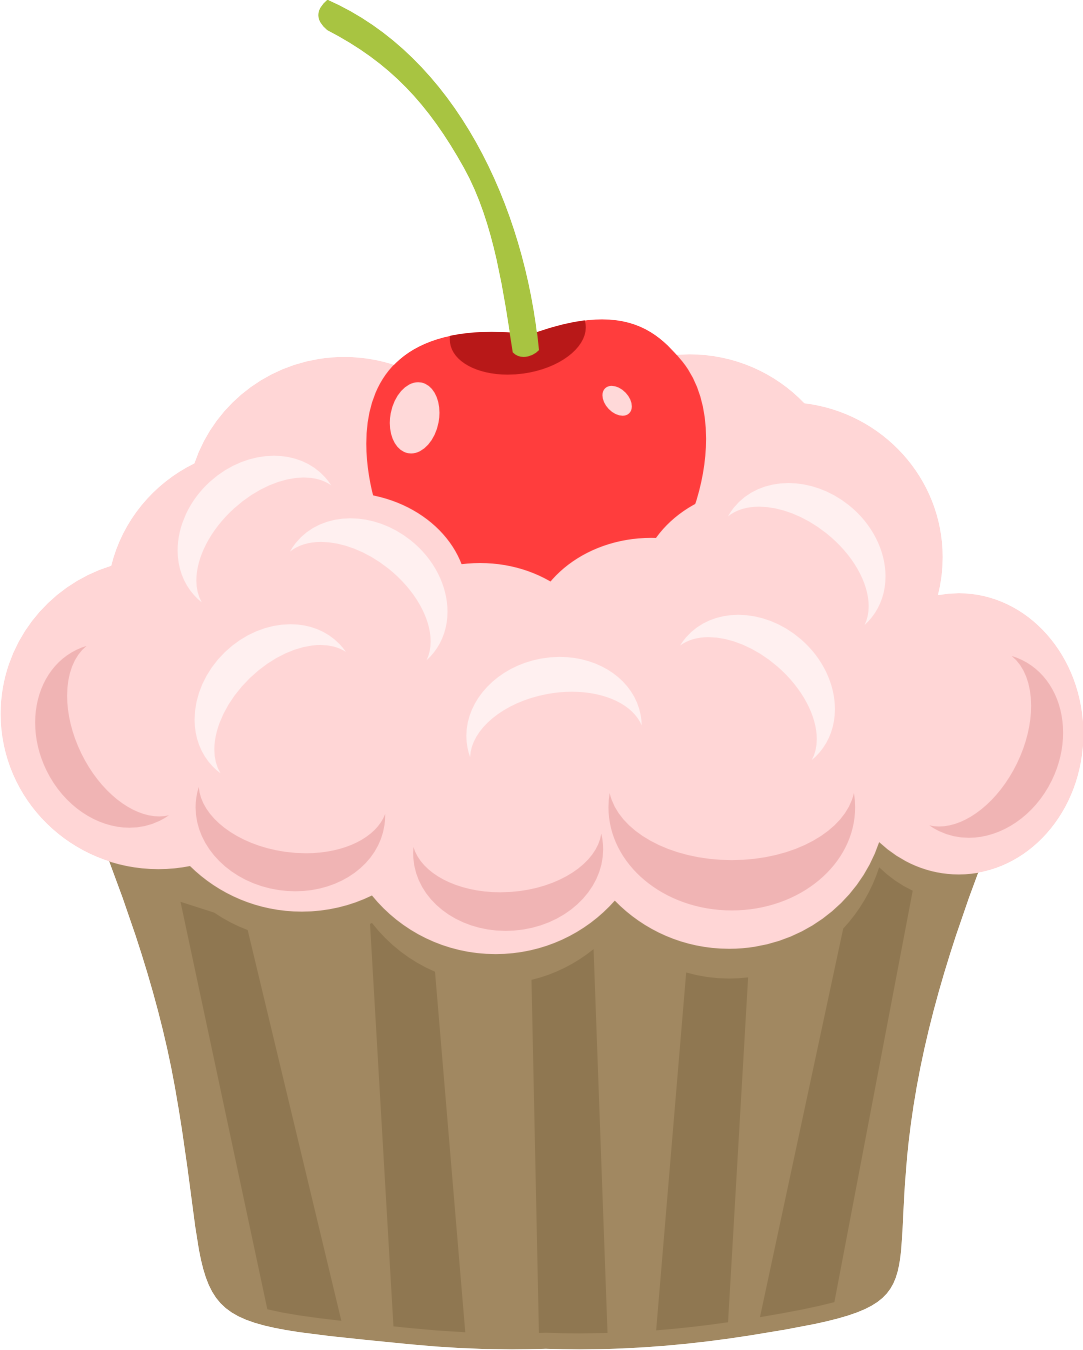 clipart free library Cupcake with candle clipart. M s imprimibles gratuitos.